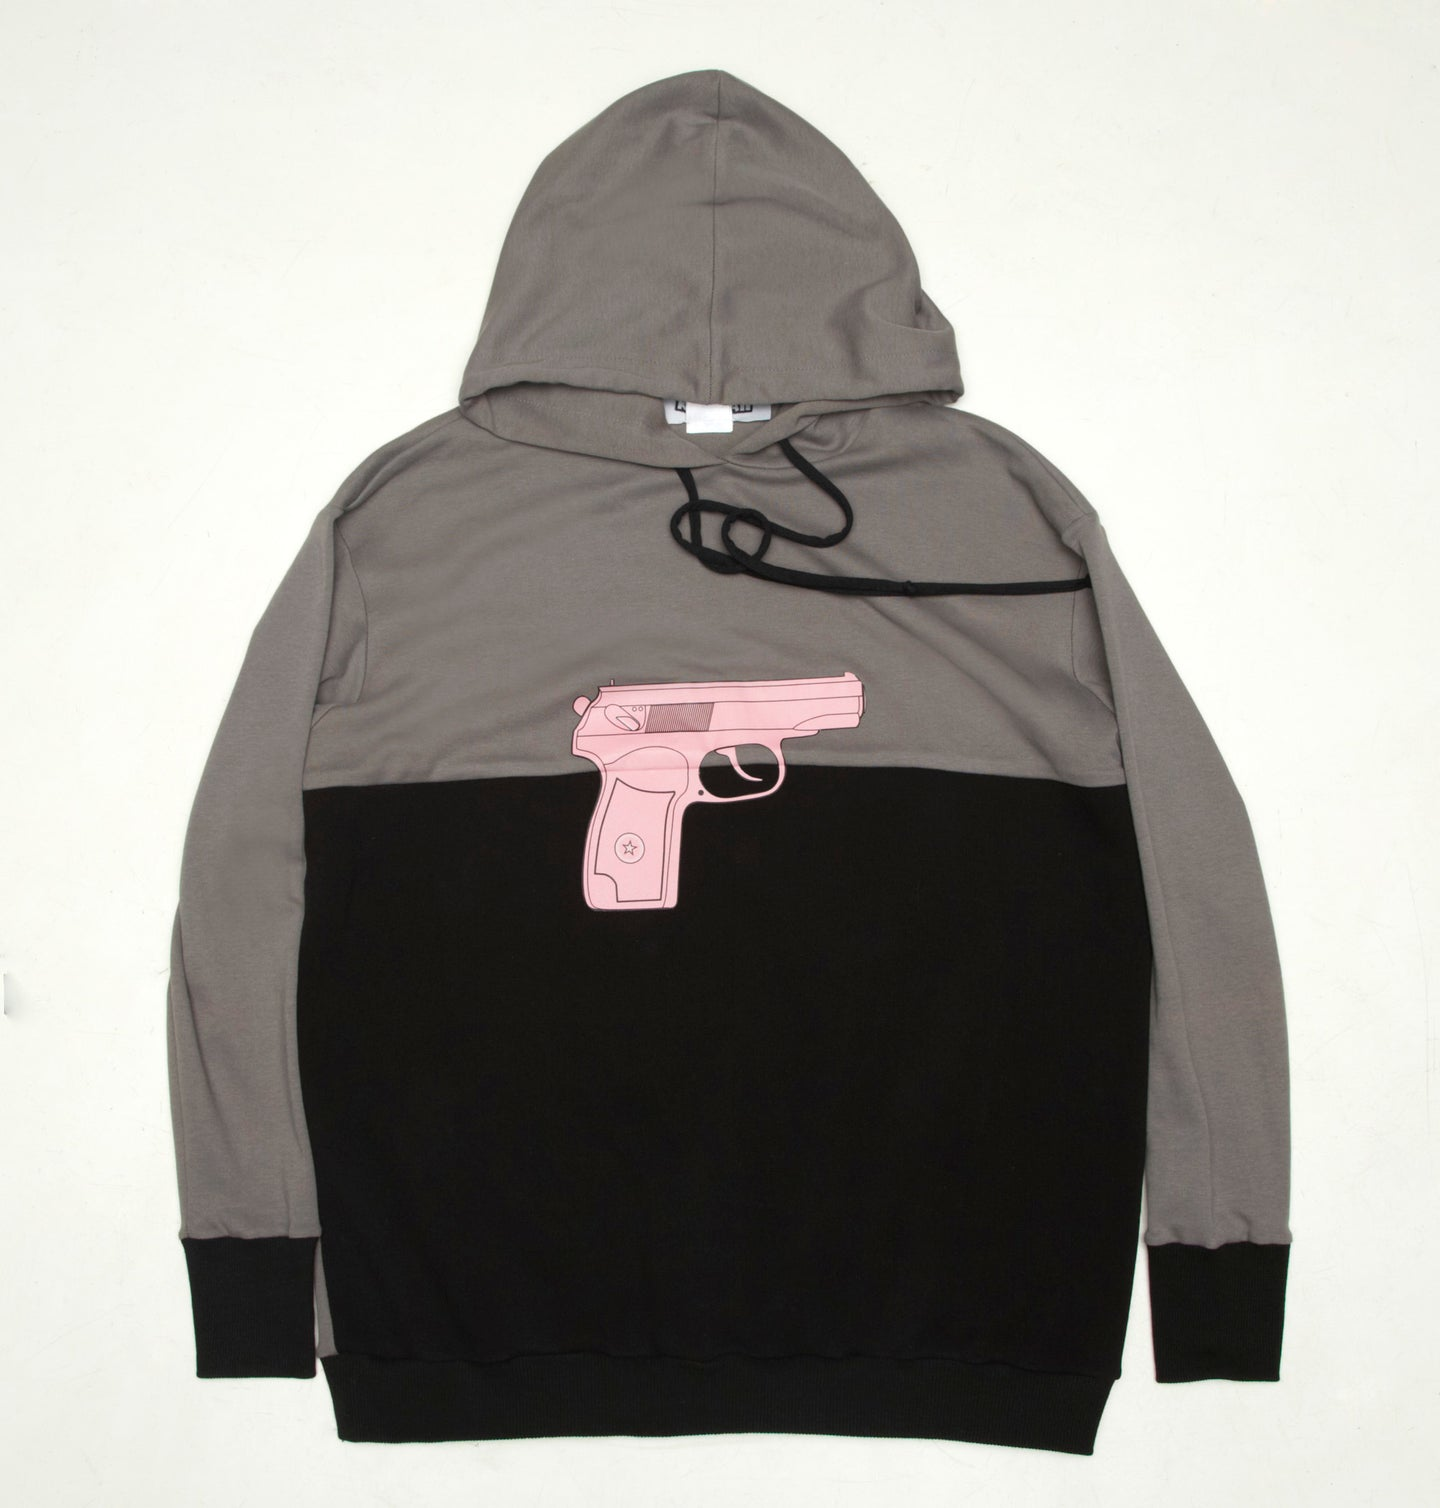 Boys Black/Gray Hoodie With Gun print - krawaii.com